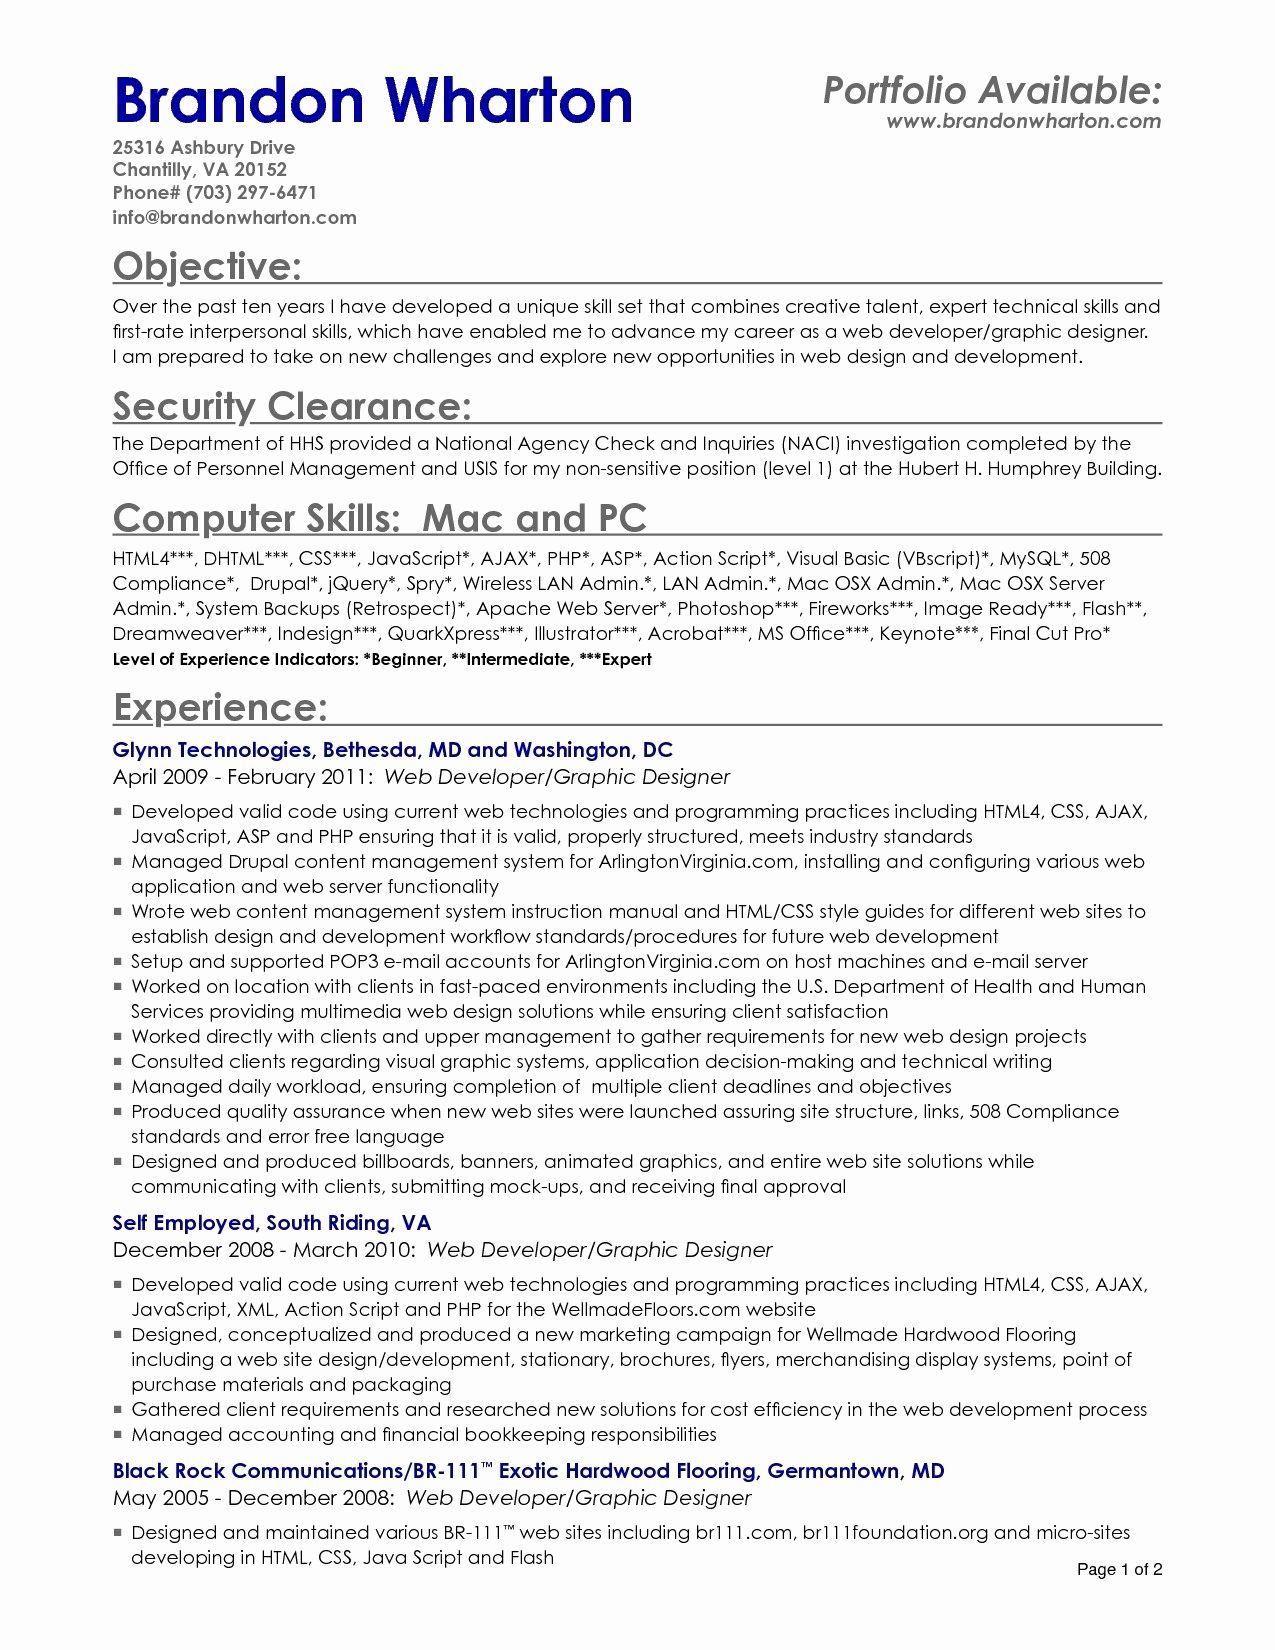 Dorable Mba Resume Book Wharton Pdf Sketch Resume Ideas Others